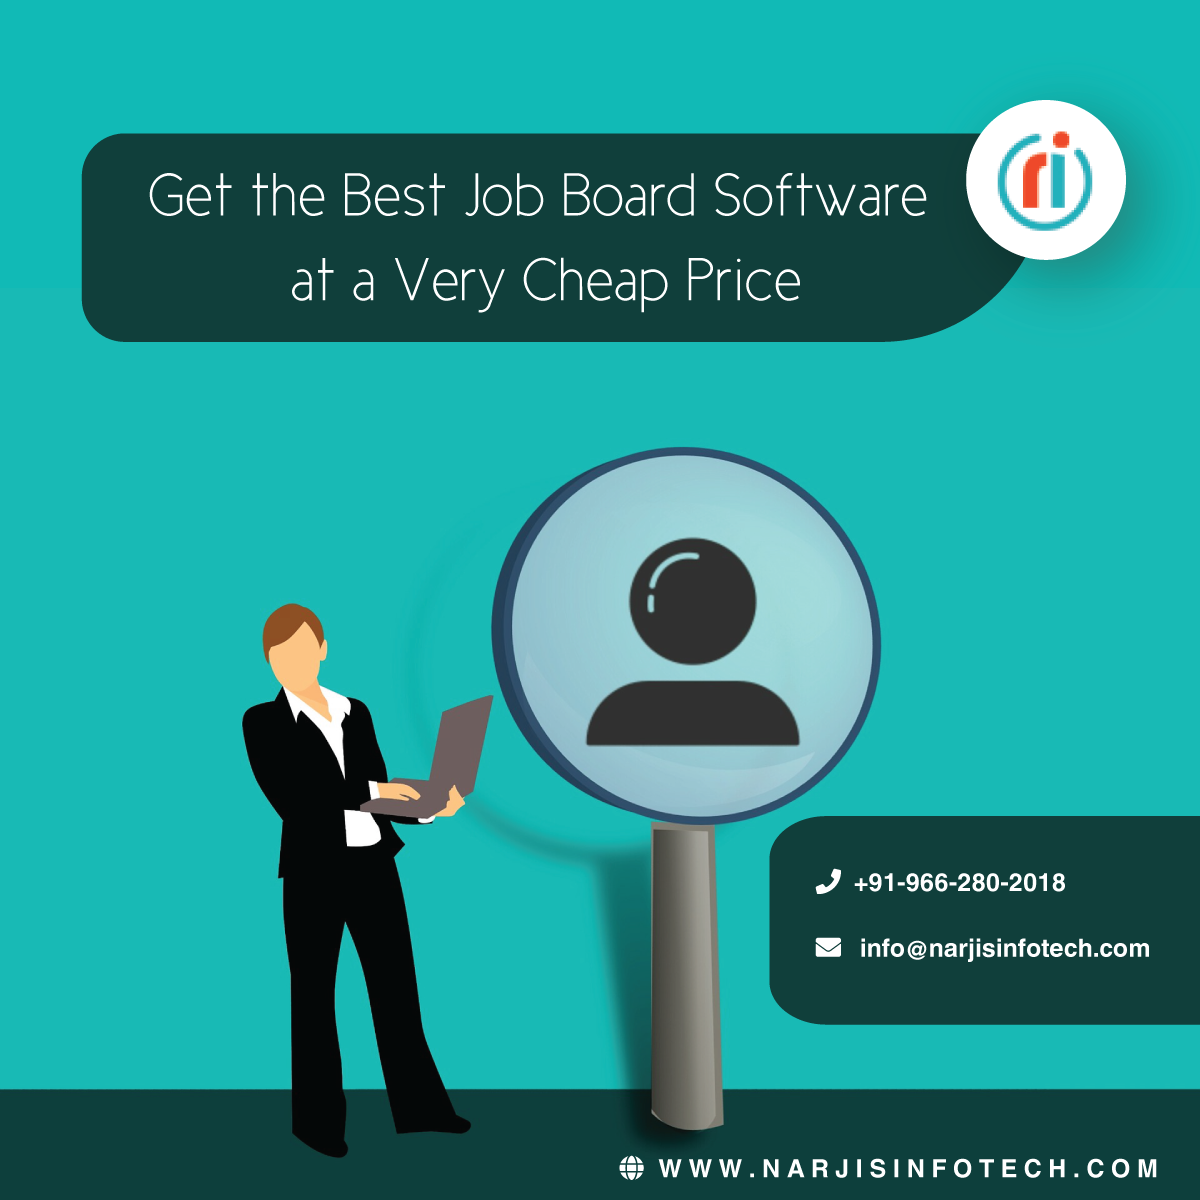 Get the best Readymade Job Board Software at Very Reasonable Price